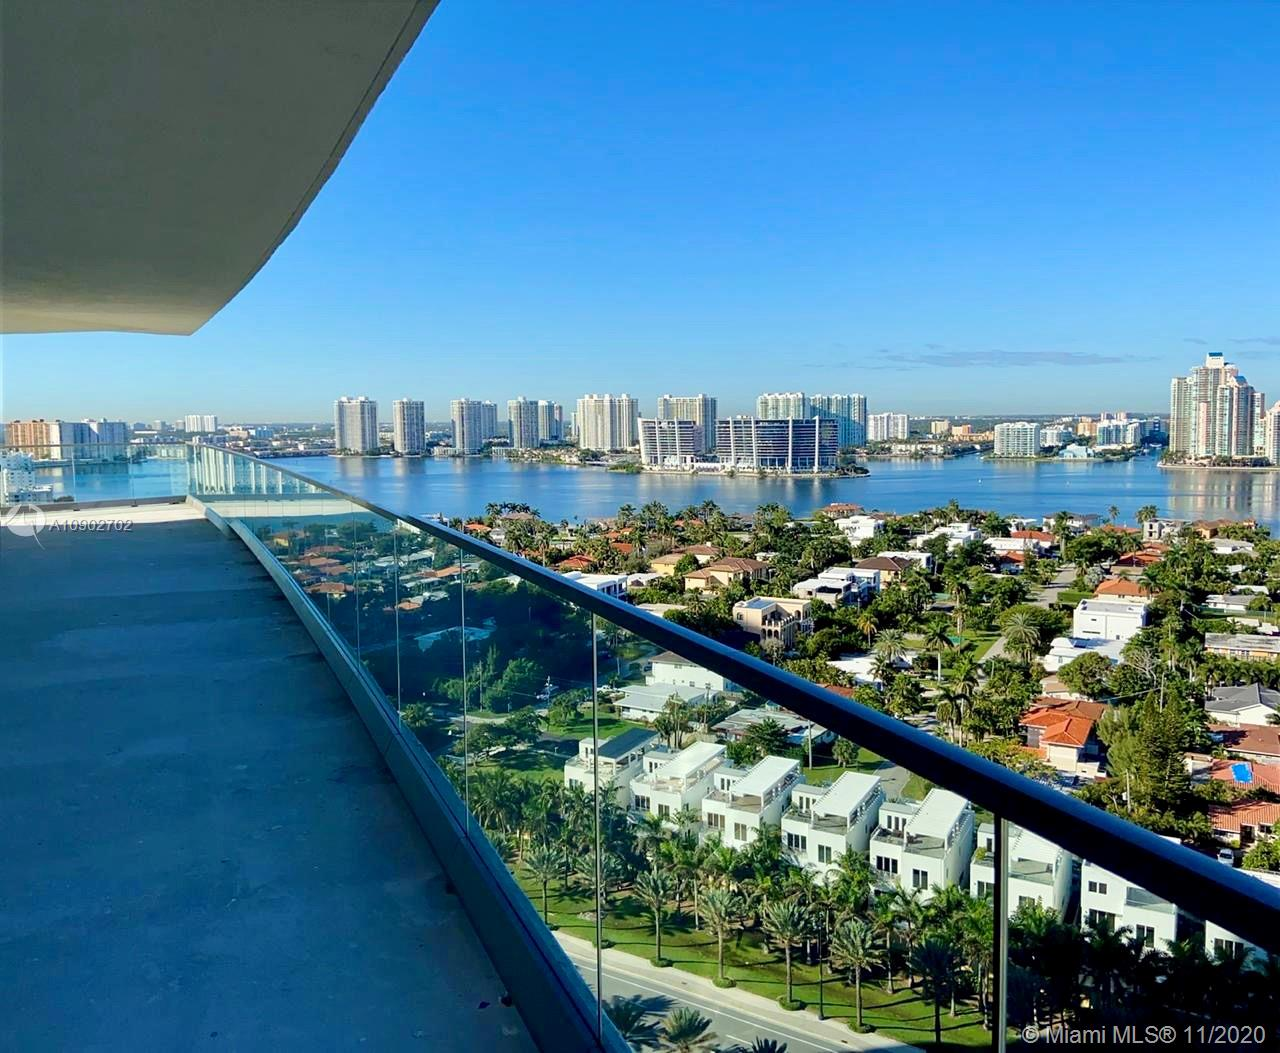 UNBEATABLE PRICE BRAND NEW 2 BED + 2 BATH CORNER UNIT WITH WEST FACING AMAZING VIEWS OF INTRACOASTAL, DOWNTOWN MIAMI, AND OCEAN VIEWS FROM OVERSIZED WRAP AROUND BALCONY OF 1,000 SQ FT WITH AN OUTDOOR ELECTRIC BBQ WITH REFRIGERATOR, LOFT CEILINGS, SEMIPRIVATE FOYER, SUBZERO FRIDGE, AND WOLF APPLIANCES. NEWLY LUXURIOUS AND ELEGANT OCEAN FRONT ARMANI TOWER WITH LOTS OF AMENITIES- BAR, CLUB ROOM, GYM, SPA, CIGAR AND WINE ROOM, KIDS ROOM, THEATER, RESTAURANT, AND FULL RESORT STYLE WITH POOL AND BEACH SERVICE. VERY EASY TO SHOW!